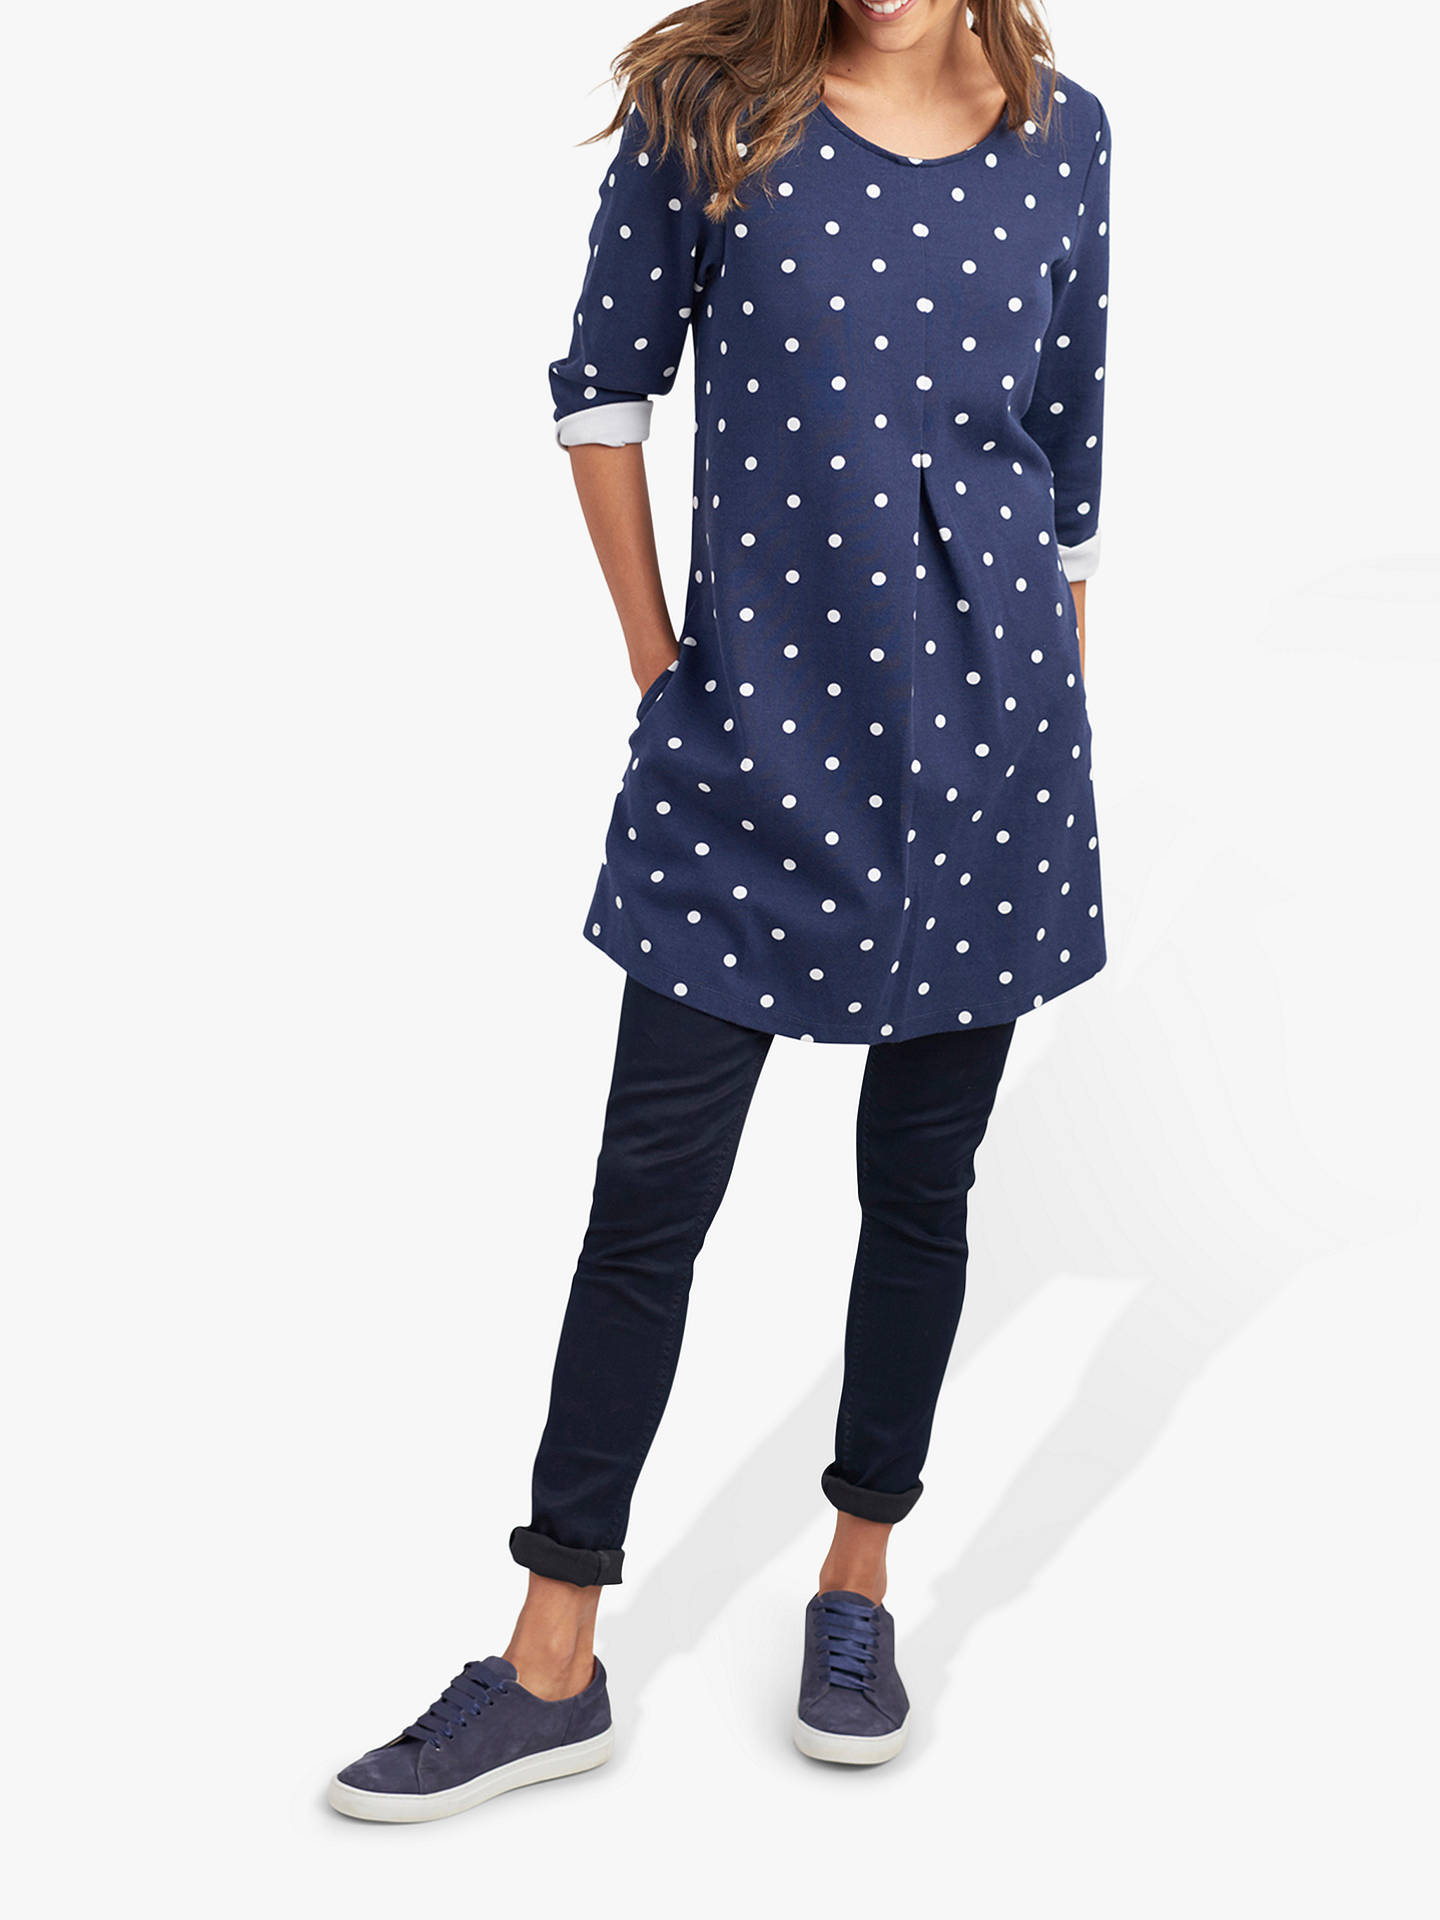 b49d581cd60 Buy Joules Edith Polka Dot Tunic, Navy, 16 Online at johnlewis.com ...